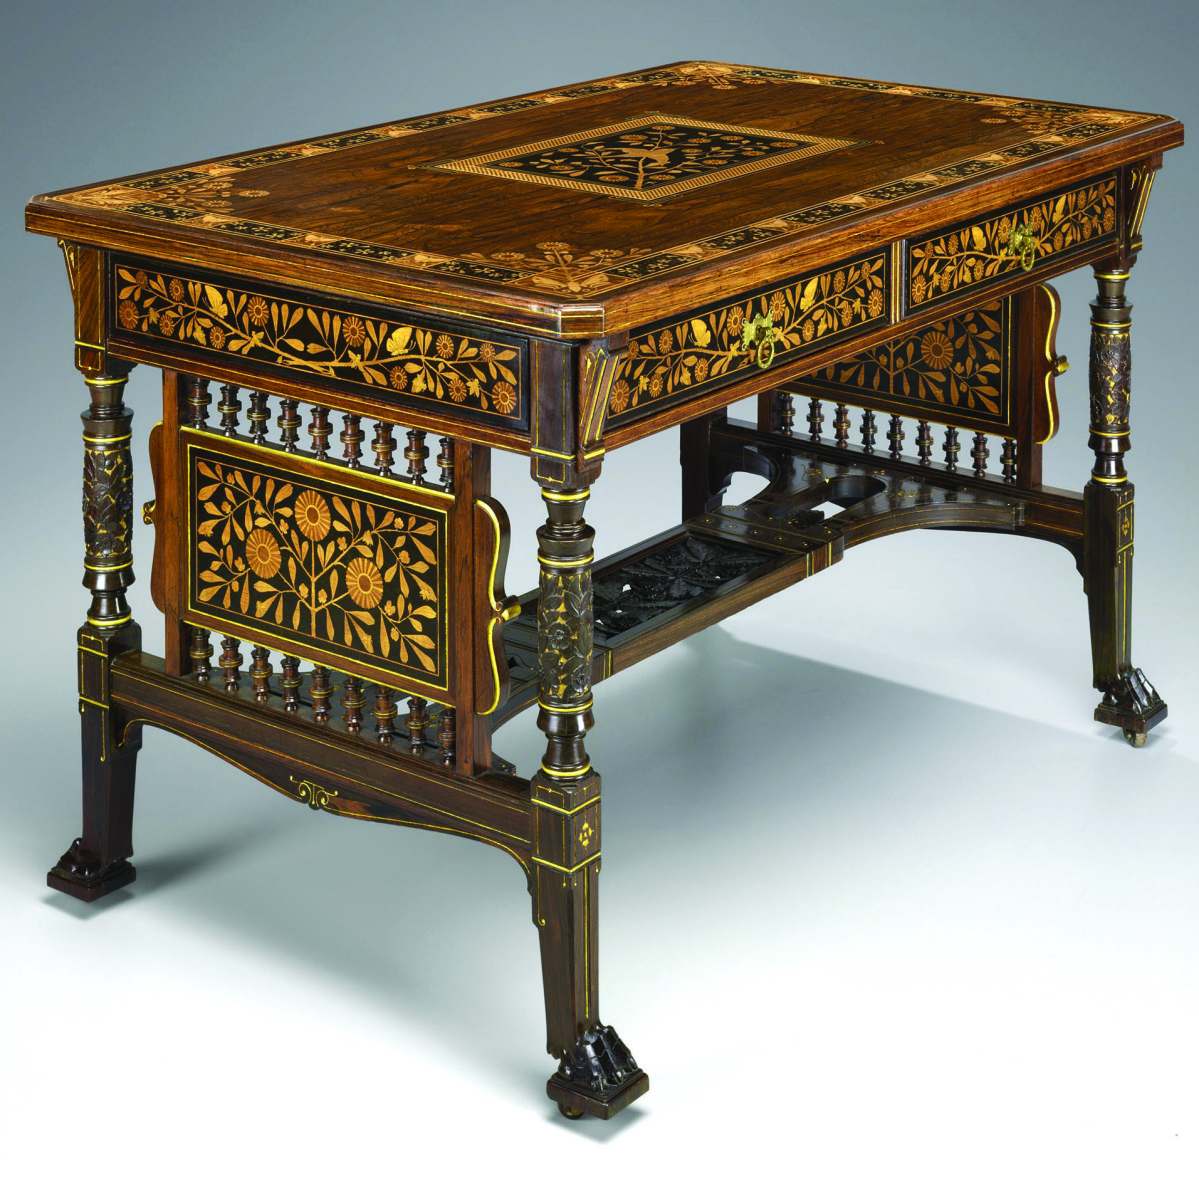 A Japanesque Center TableCenter table by Herter Brothers, circa 1878. Rosewood, mahogany, rosewood veneer, lightwood and tropical wood inlay, gilt-bronze, steel and rubber. Leonard C. Hanna Jr, Class of 1913, Fund and others.When the opportunity to purchase this table came along, our endowment income was not very flush and acquiring it meant forgoing other opportunities for a few years, but we felt it was worth it. This center table is a superlative example of the Japanese-inspired furniture Herter Brothers introduced in the mid-1870s. This table's reliance upon design reform and Japanesque ideals clearly shows the direction of Christian Herter, coupled with the firm's tradition of meticulous craftsmanship and quality materials. The acquisition of the table ramped up the strength of the Aesthetic Movement display just in time for Yale's galleries to open in 2012.                       —Patricia E. Kane